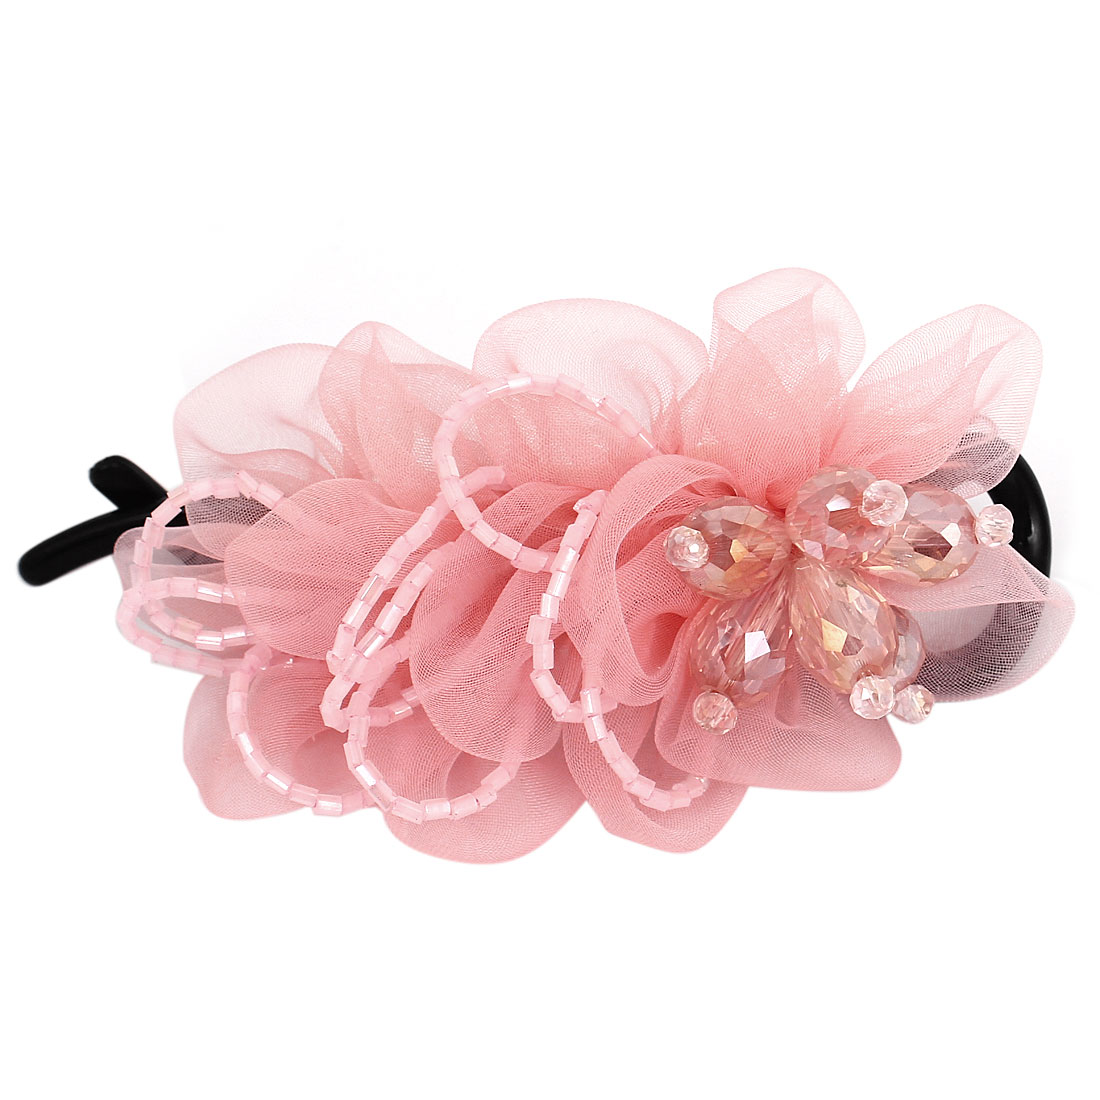 Plastic Teeth Rhinestone Bead Inlaid Flower Decor Hair Clip Barrette for Lady Pink